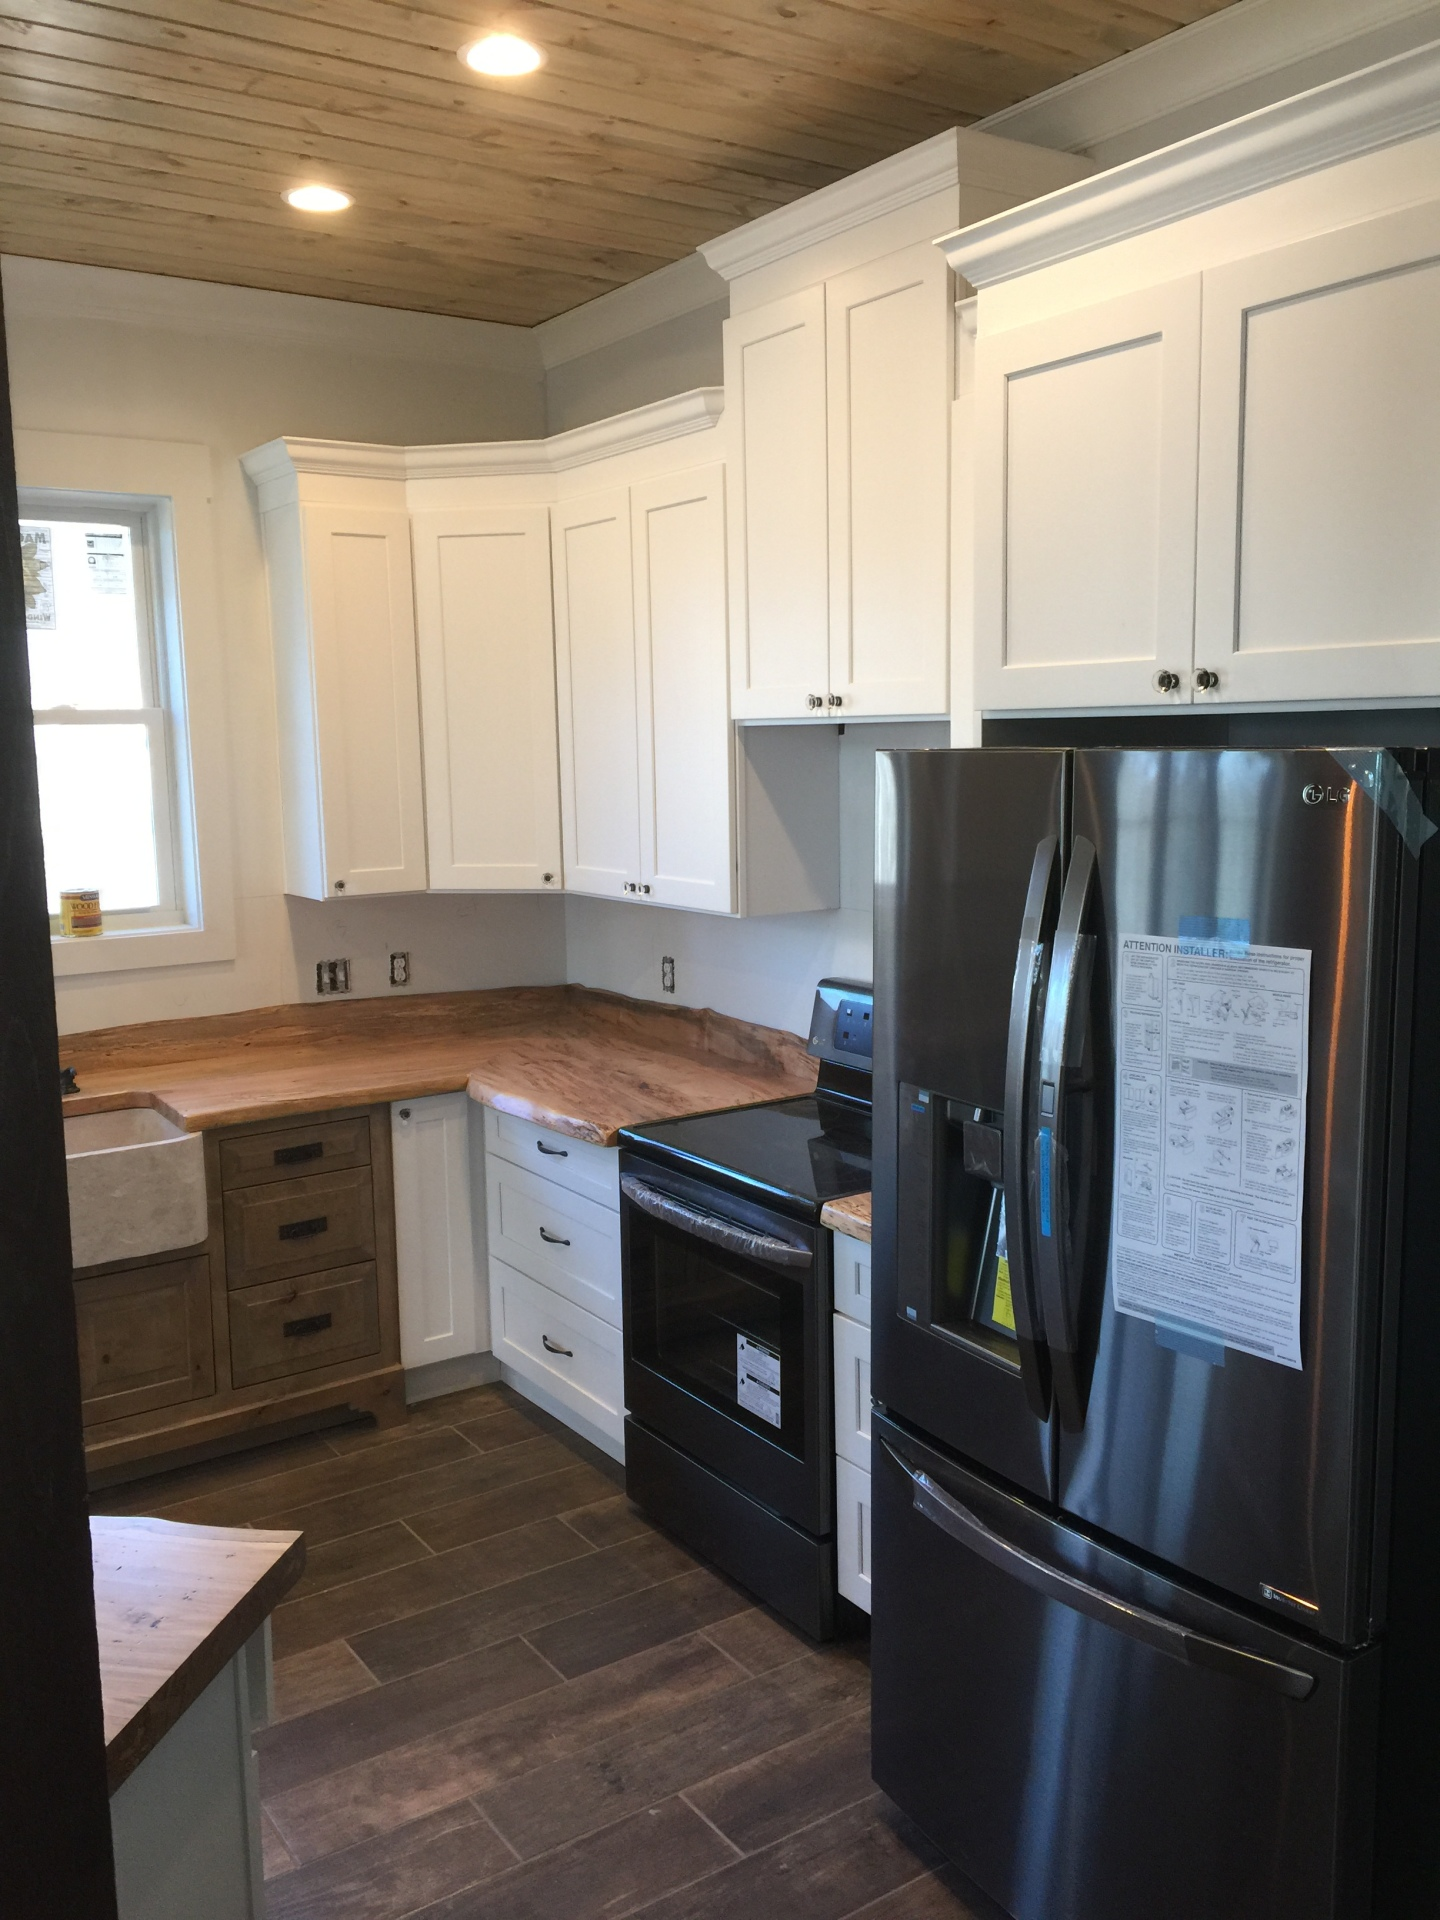 white, cabinets, kitchen, wood grain, countertops